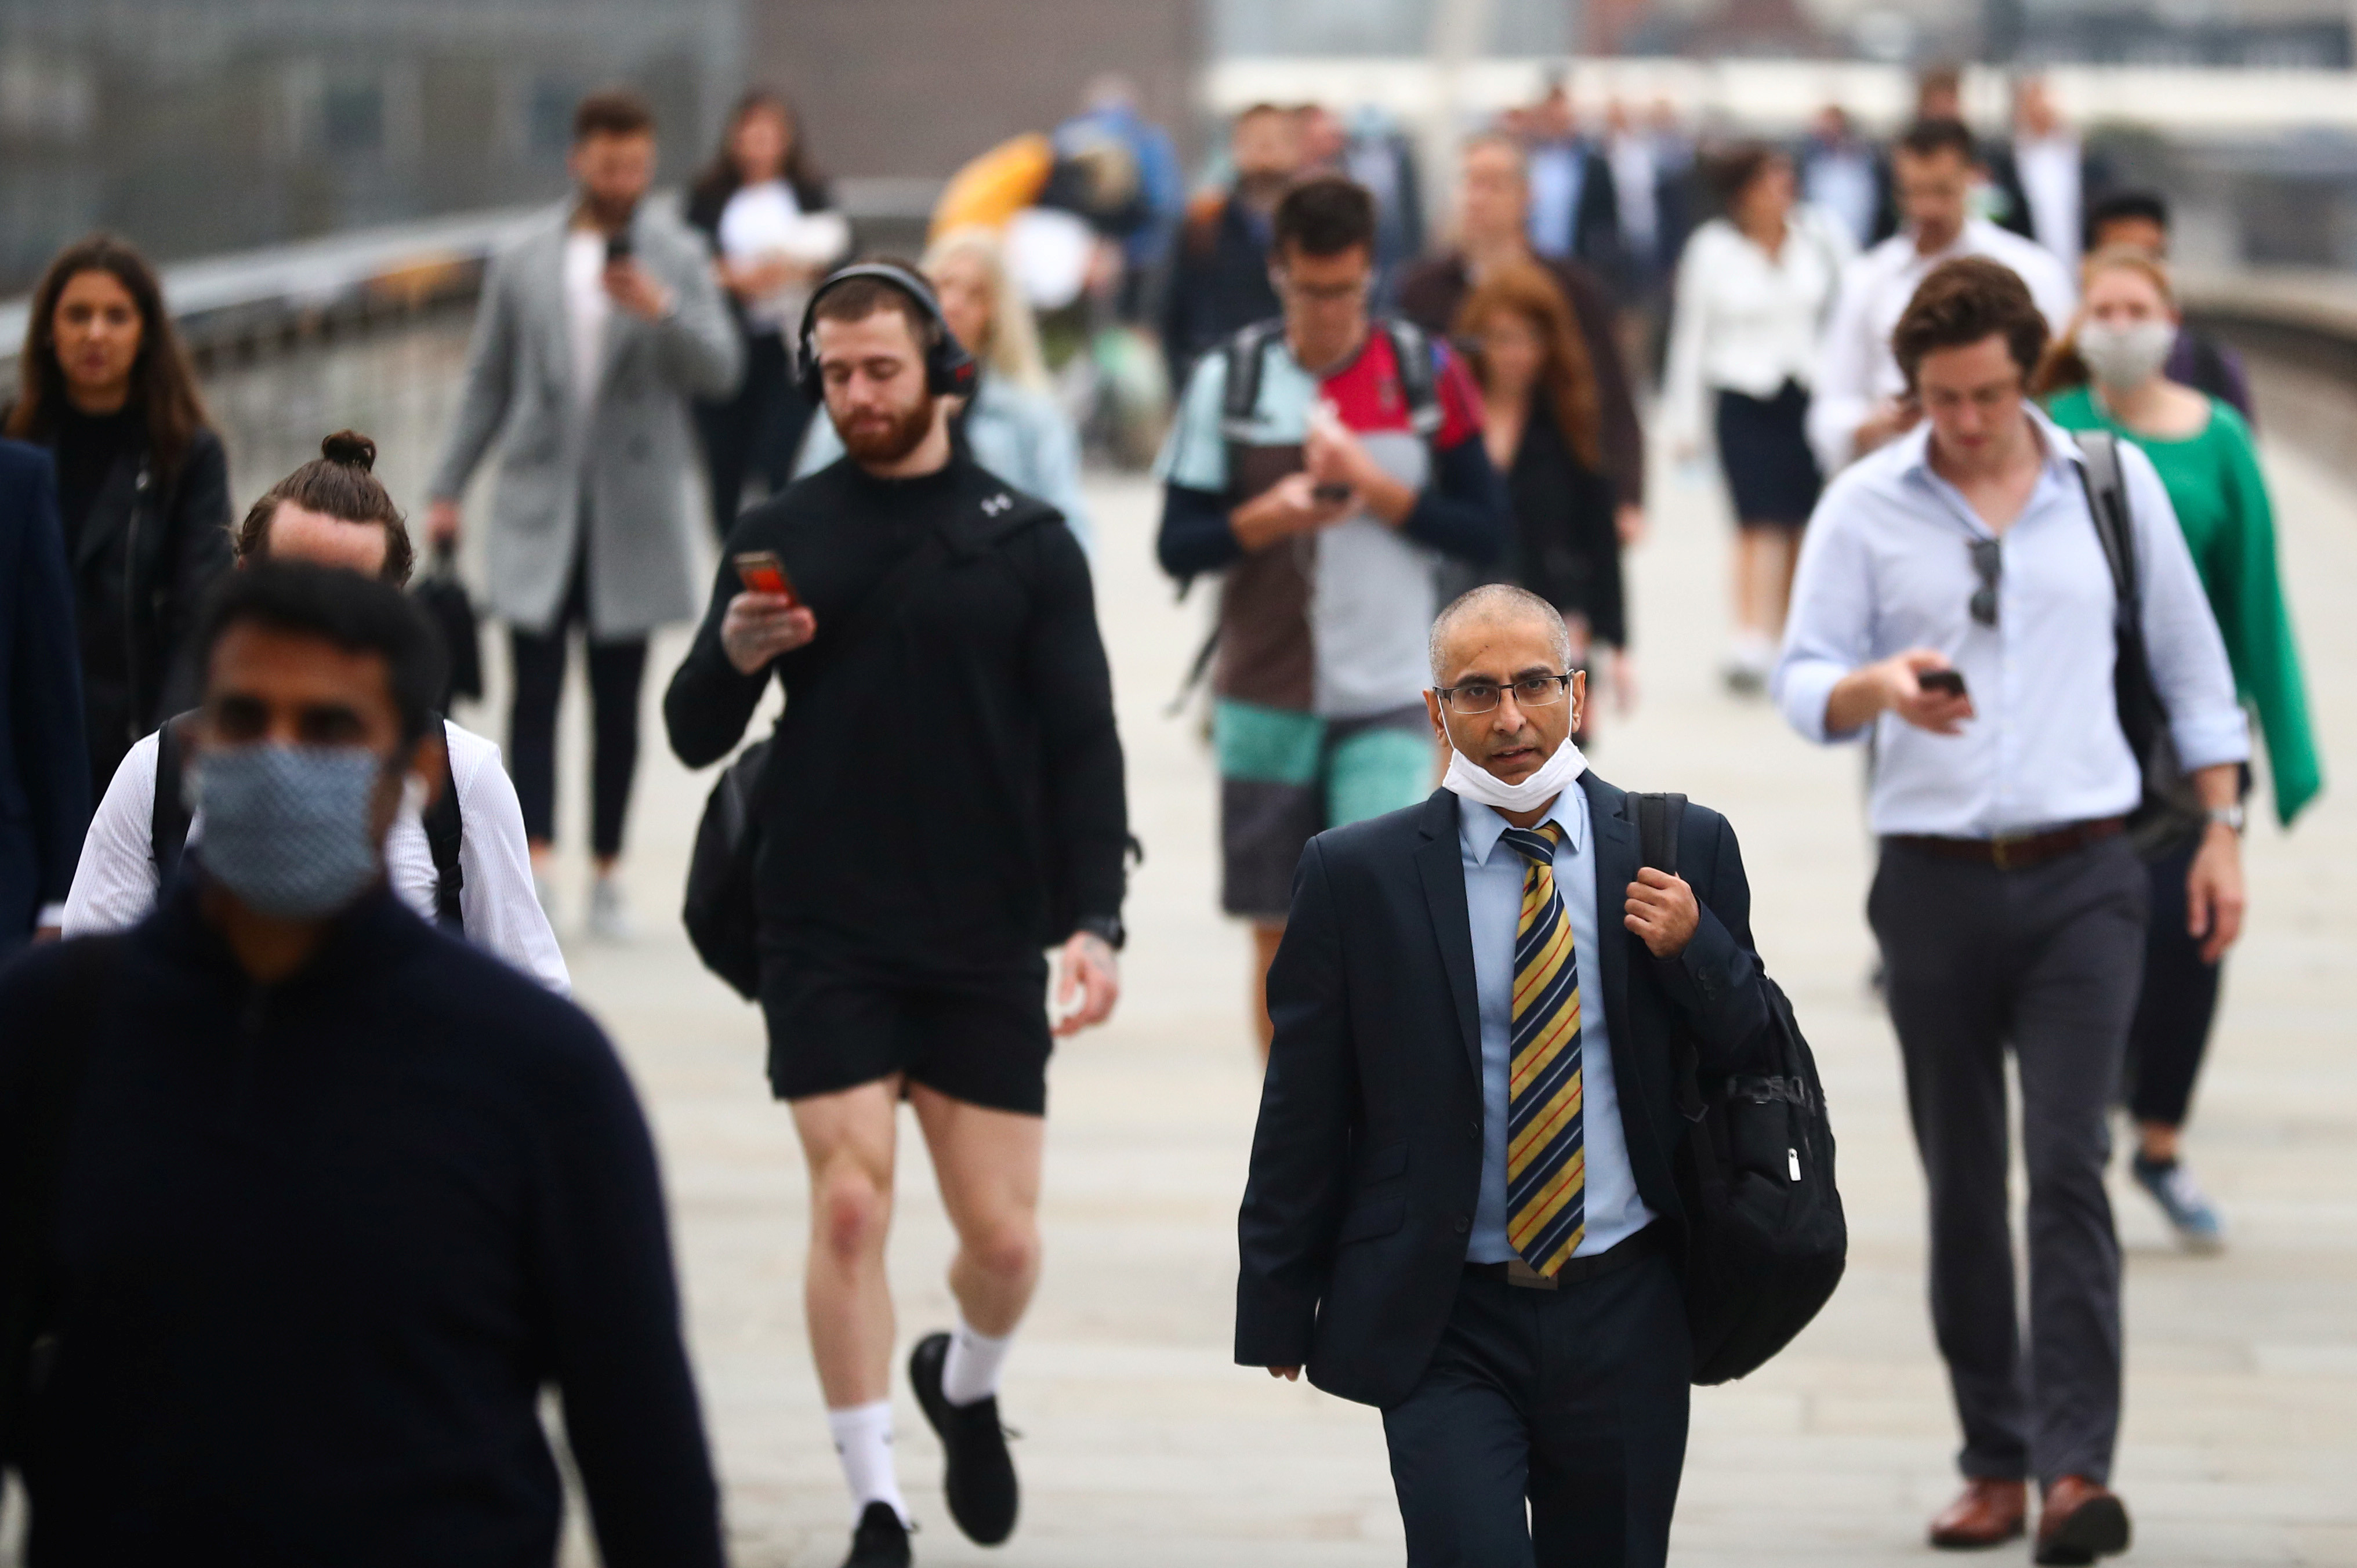 Commuters walk across the London Bridge during the morning rush hour, amid an outbreak of the coronavirus disease (COVID-19), in London, Britain September 21, 2020. REUTERS/Hannah McKay - RC2W2J9FPD3A